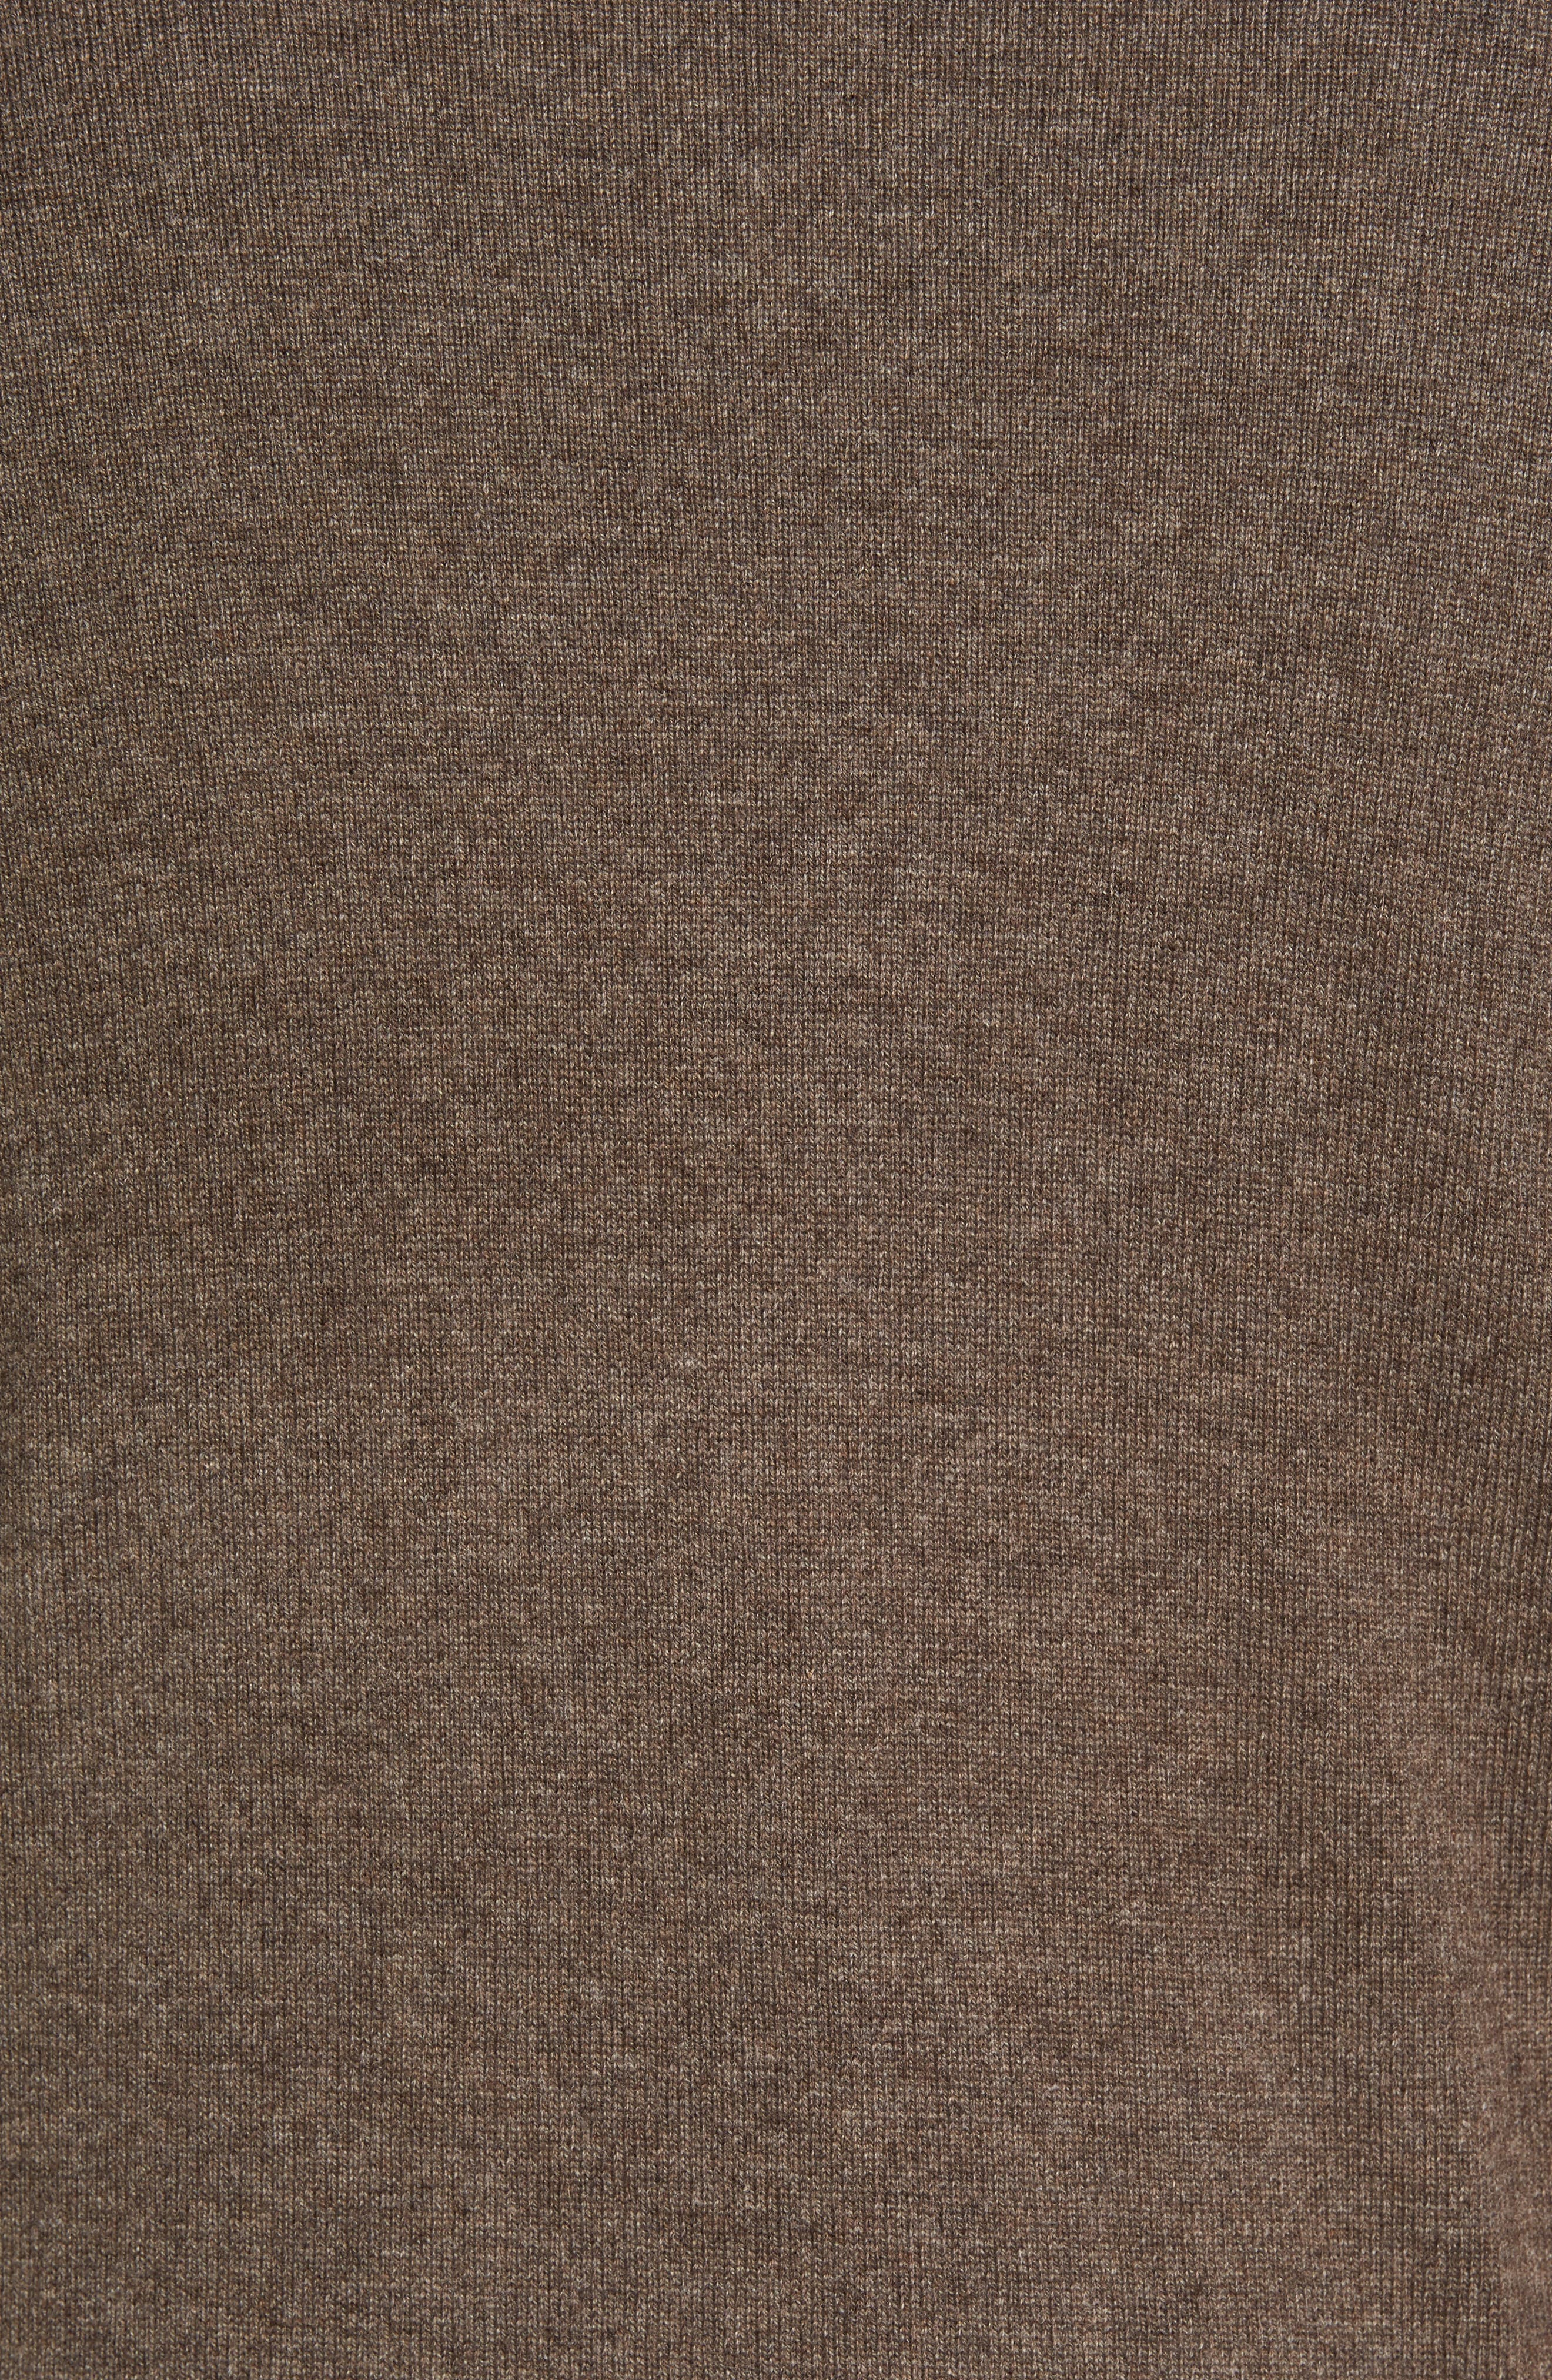 'Inchbonnie' Wool & Cashmere V-Neck Sweater,                             Alternate thumbnail 5, color,                             218